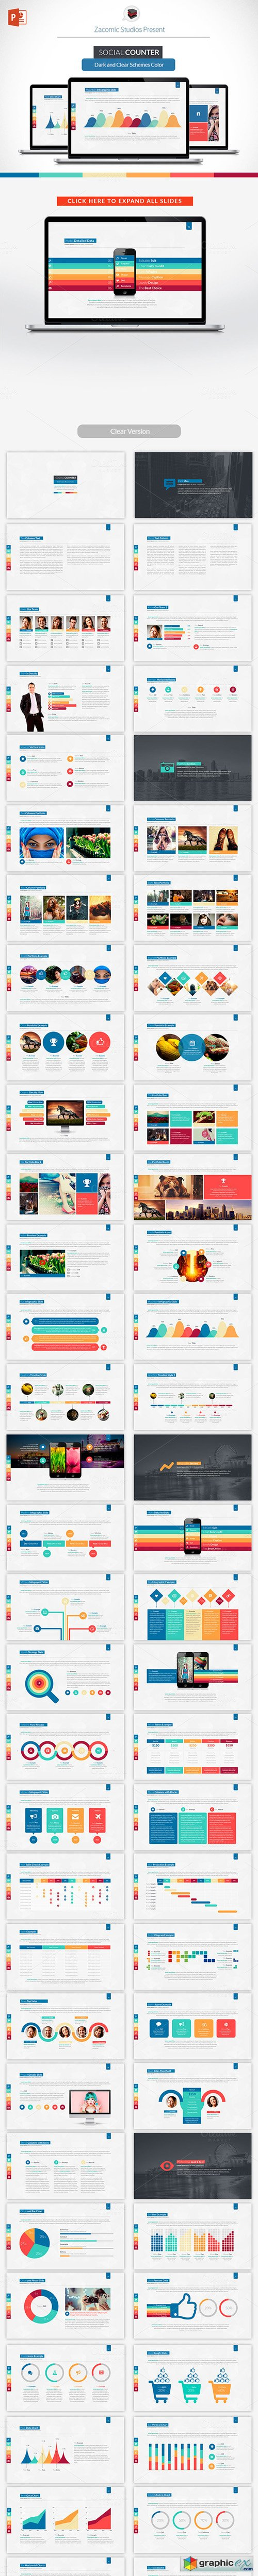 Social Counter | Powerpoint Template